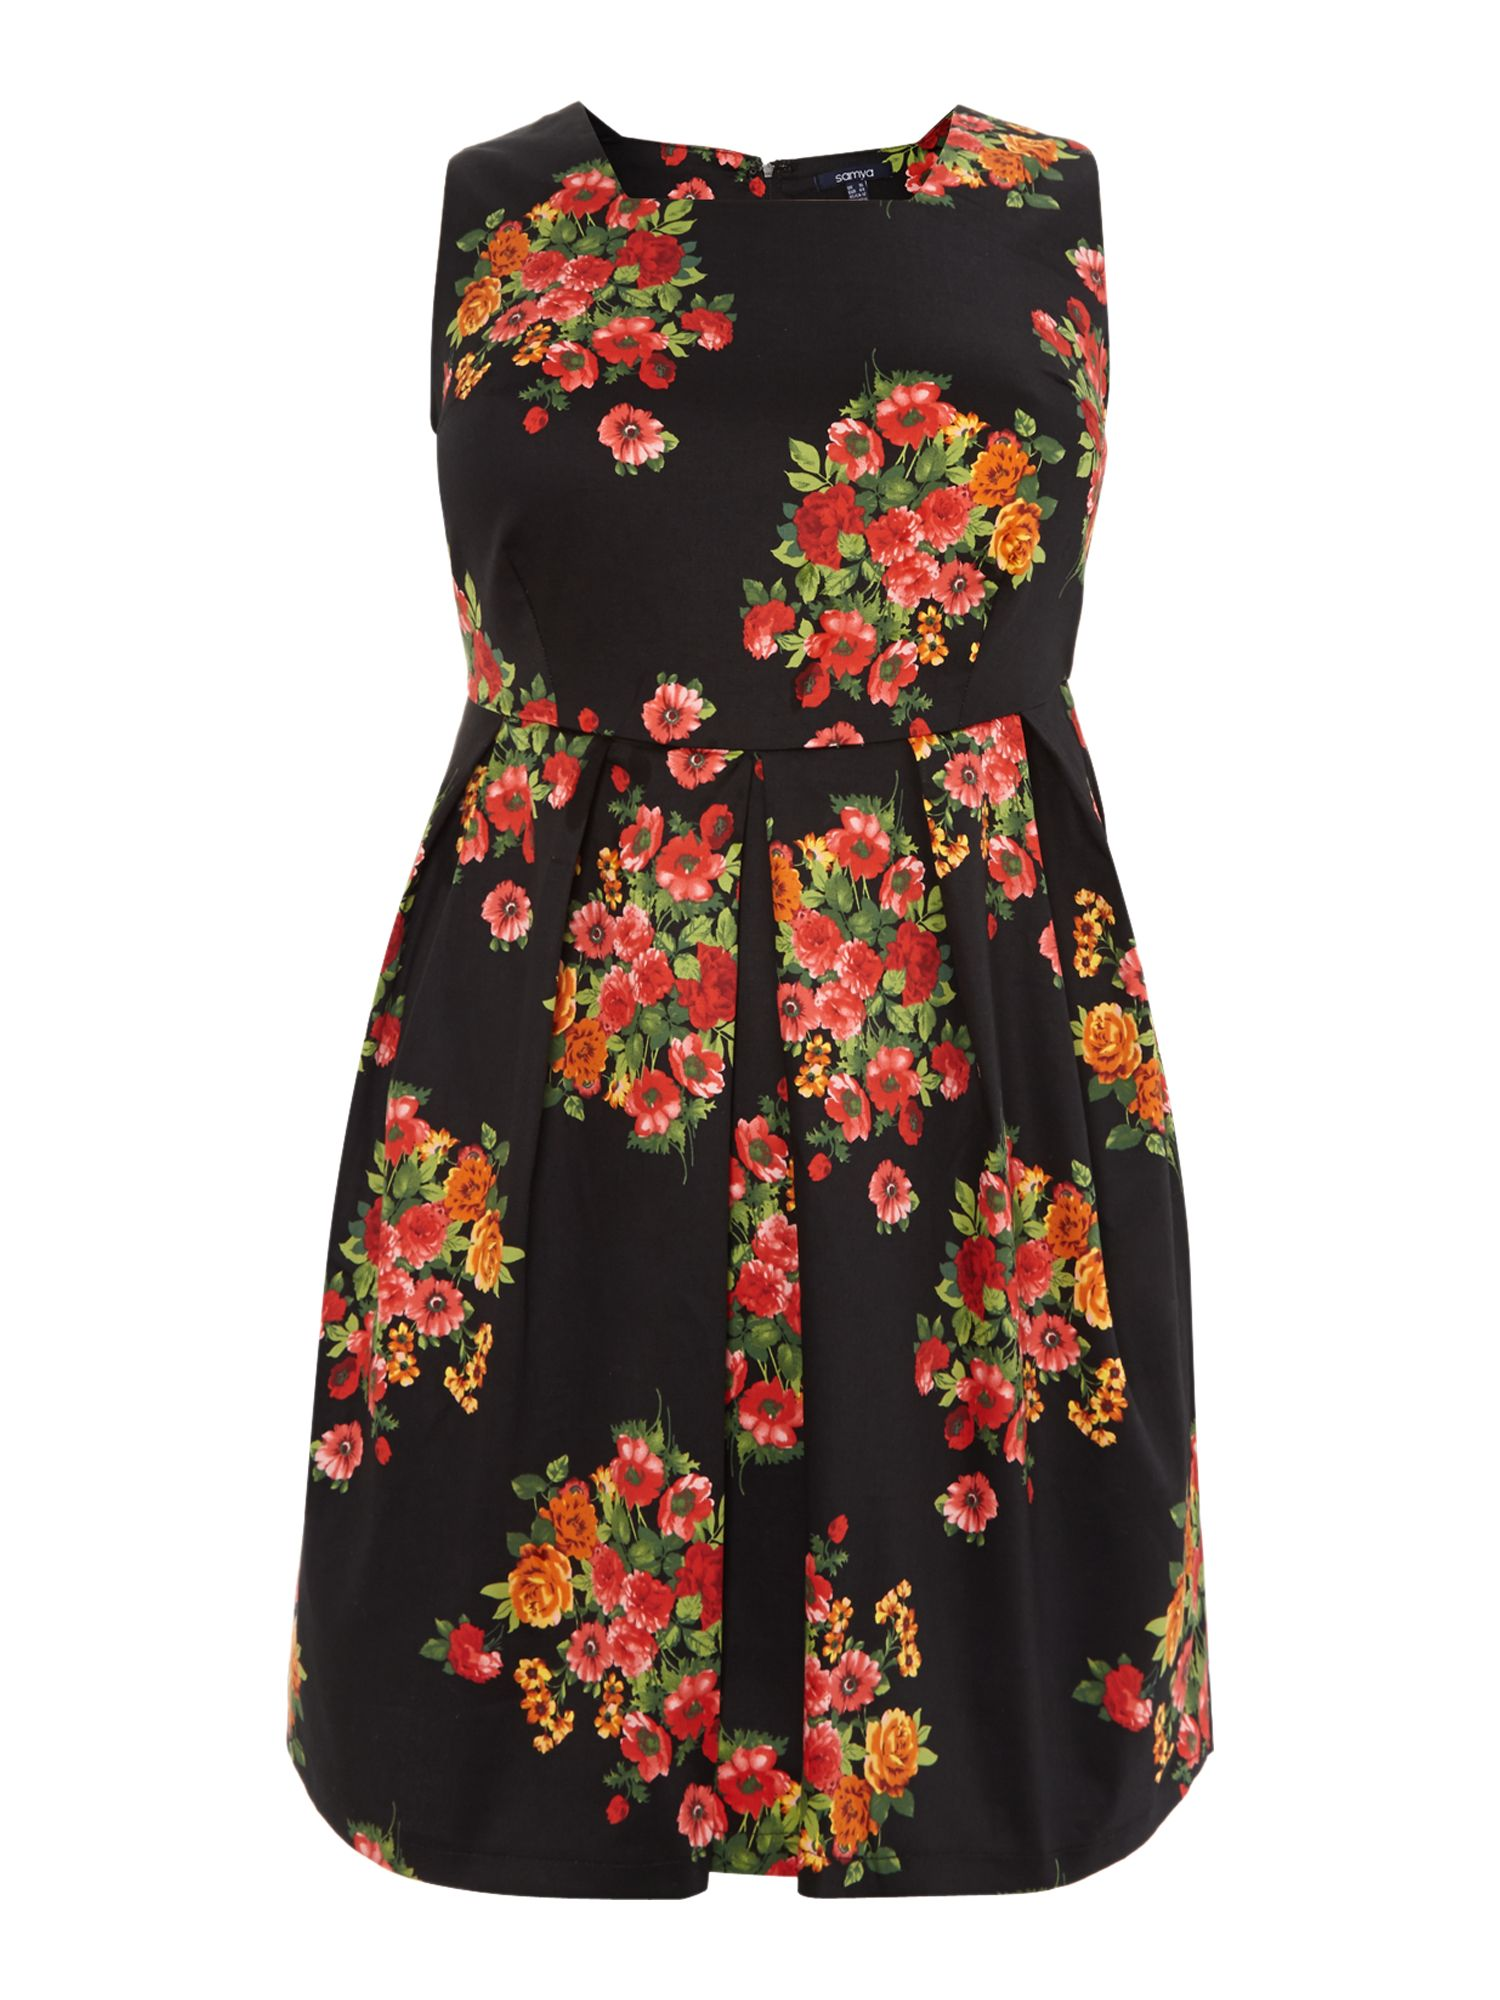 Rose printed sun dress